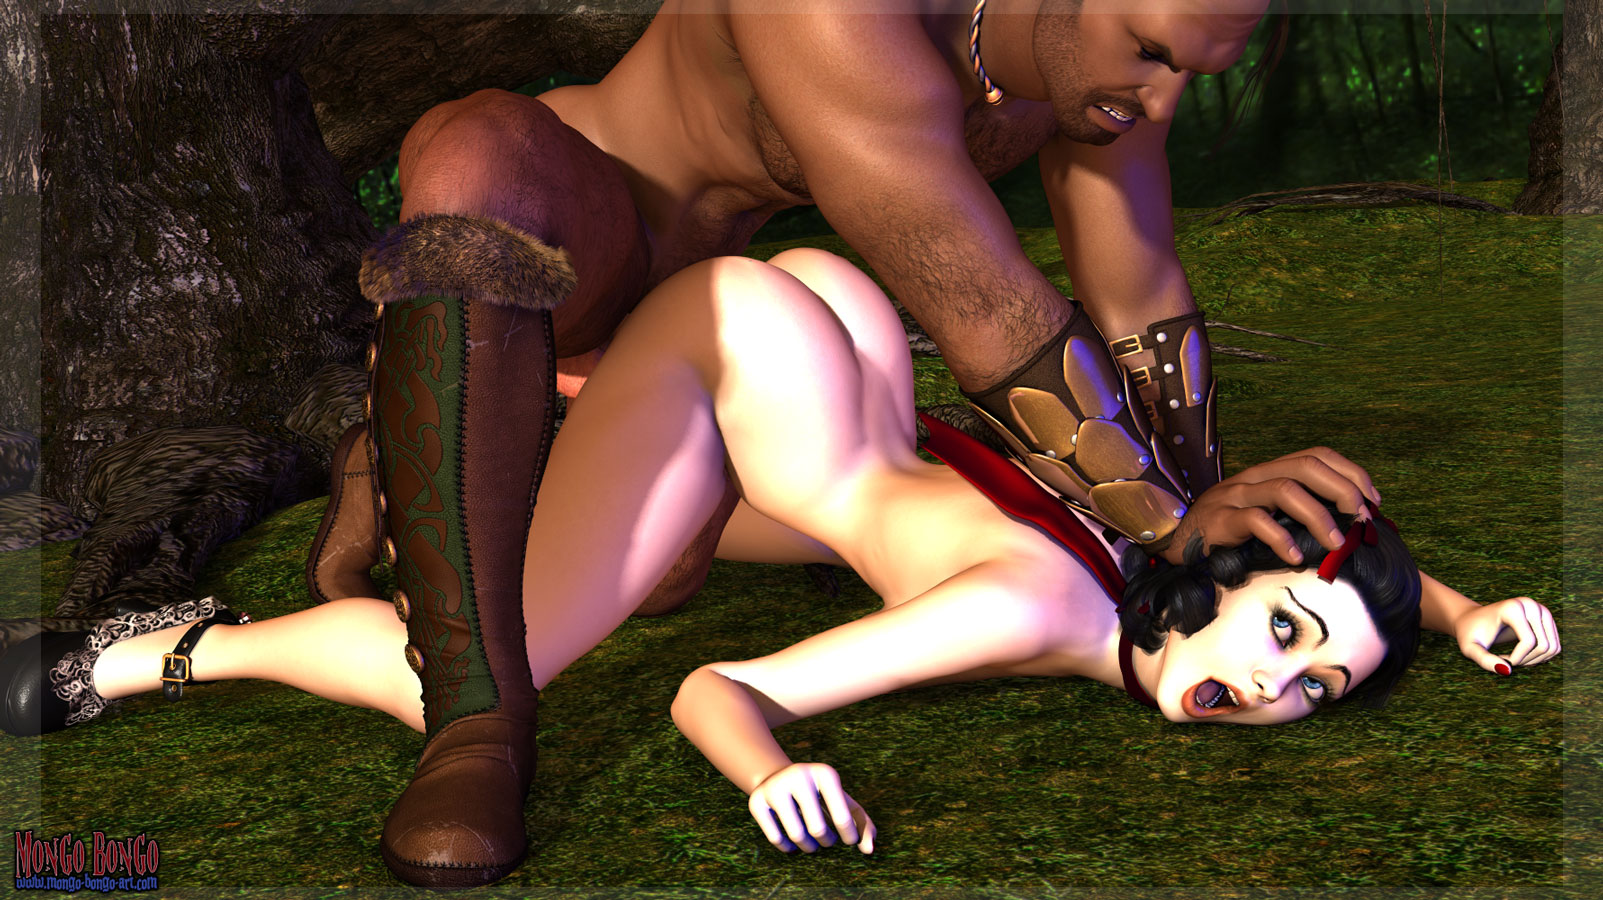 Snowwhite princess sex 3d image hentia videos